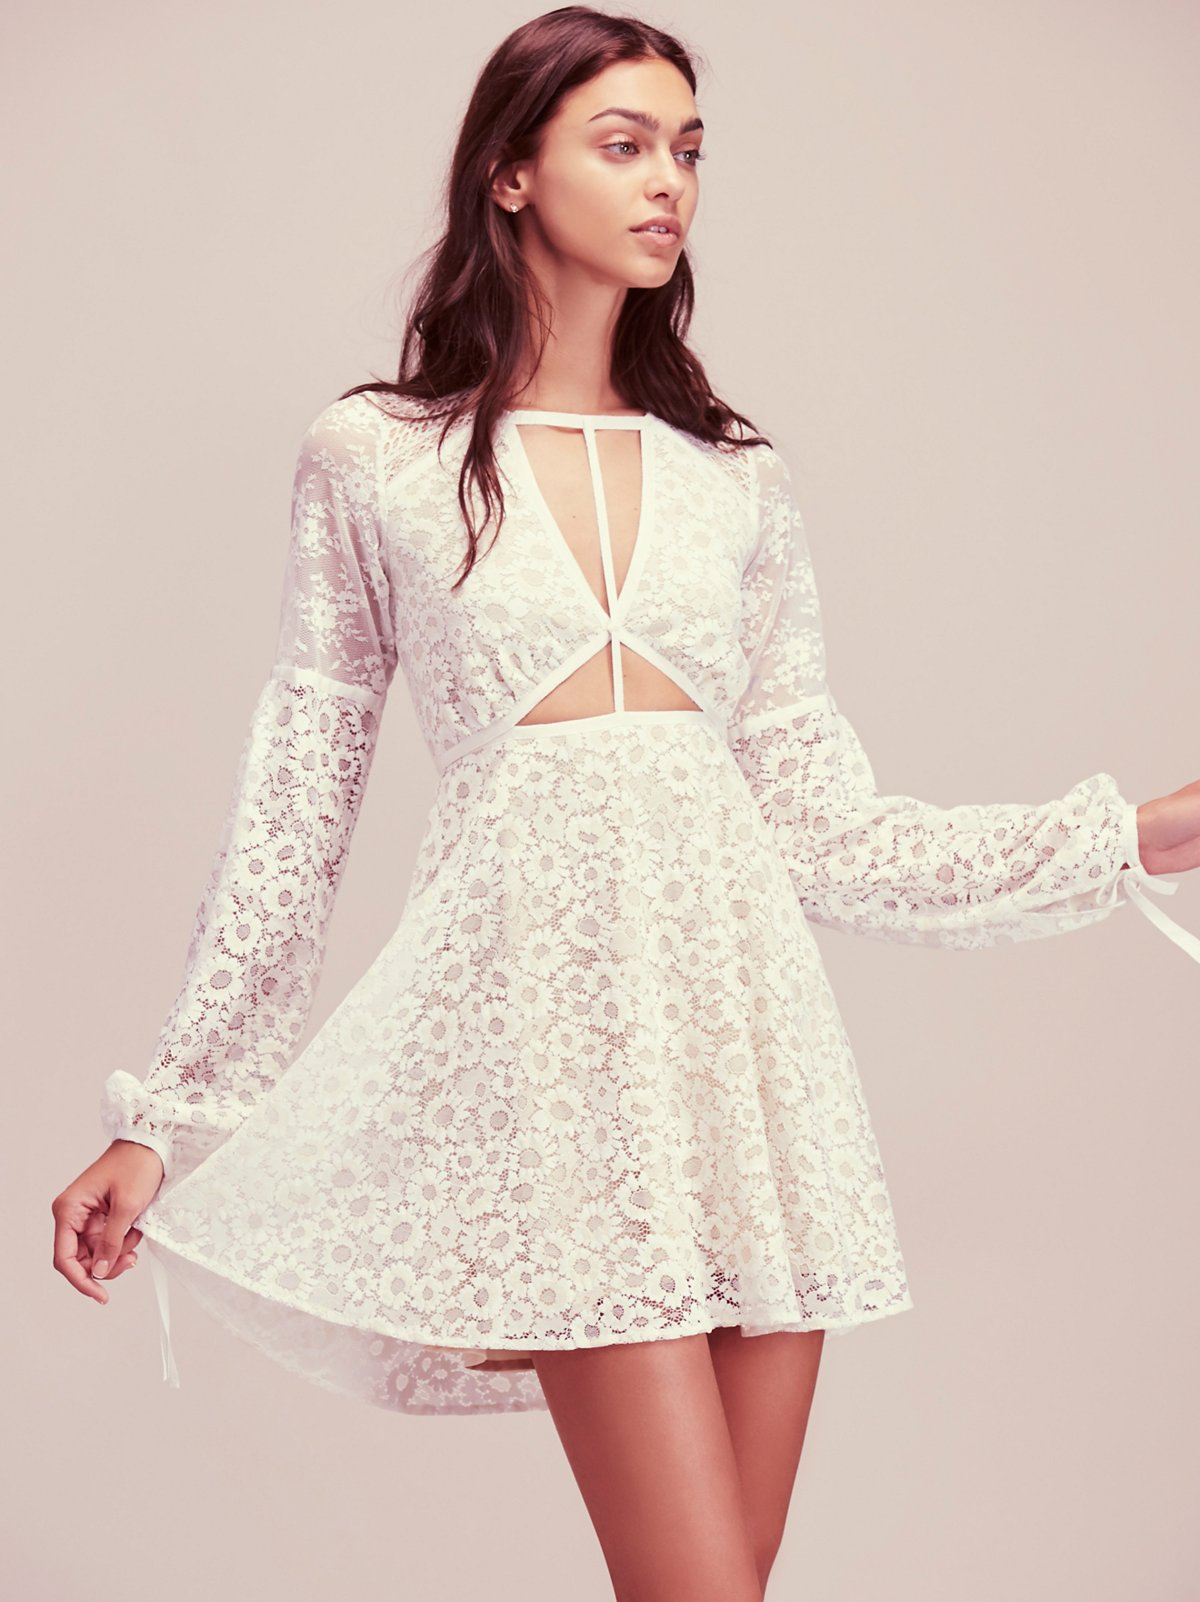 Textured Lace Mini Dress